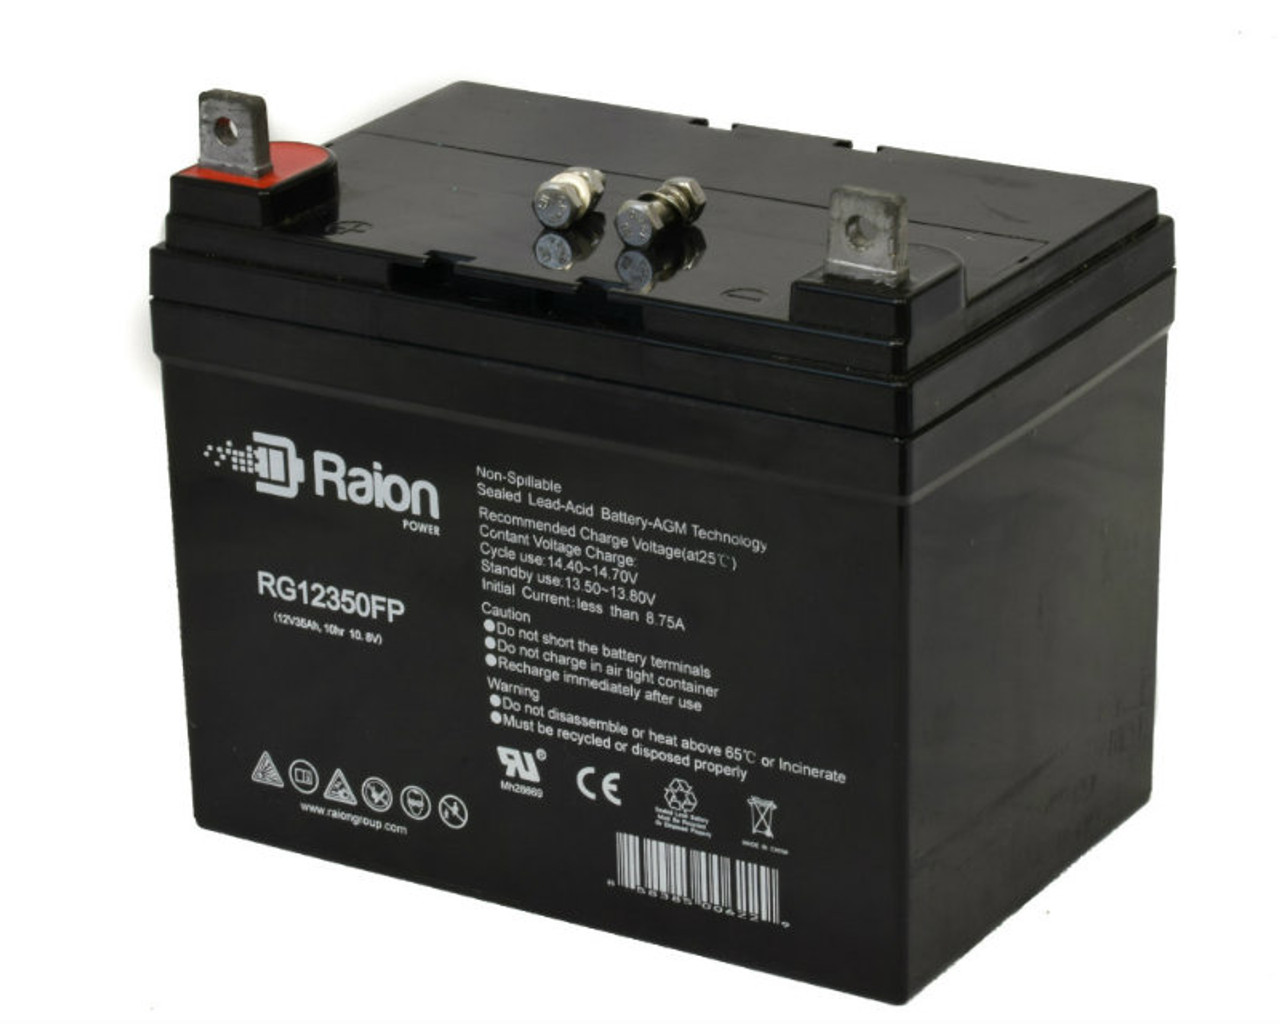 RG12350FP Sealed Lead Acid Battery Pack For Quickie AGM1248T Mobility Scooter